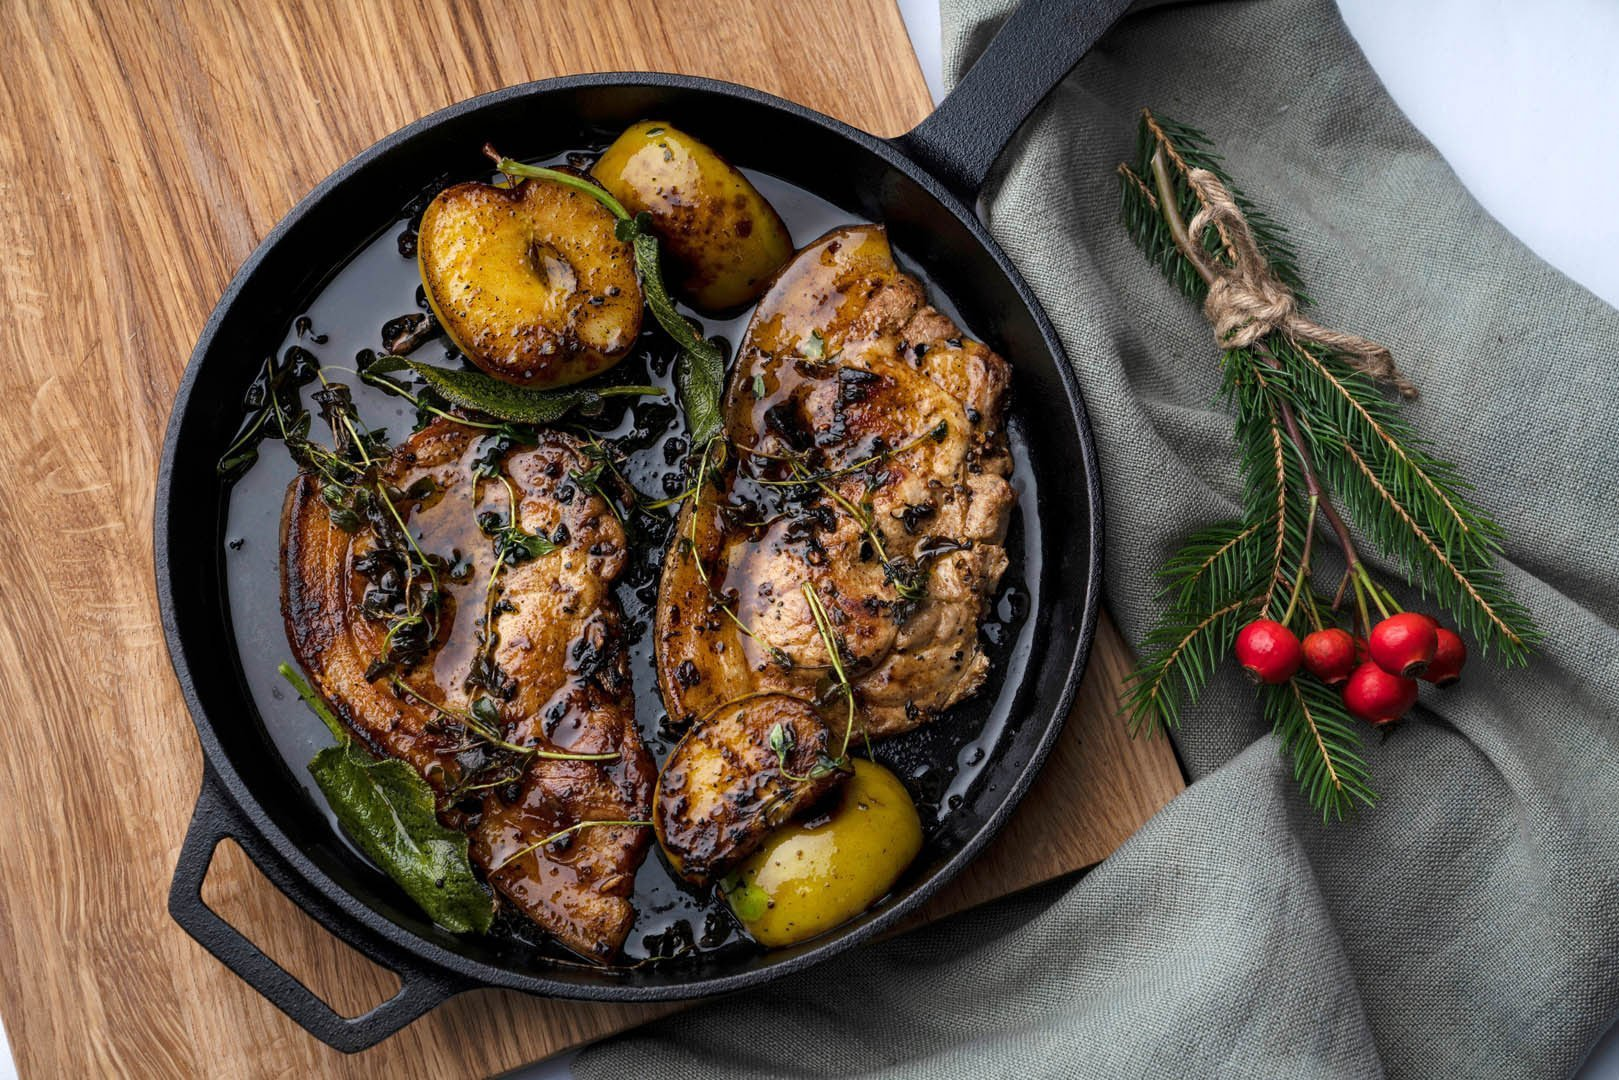 Roast Pork Chops with Apple & Cinnamon Featured Image